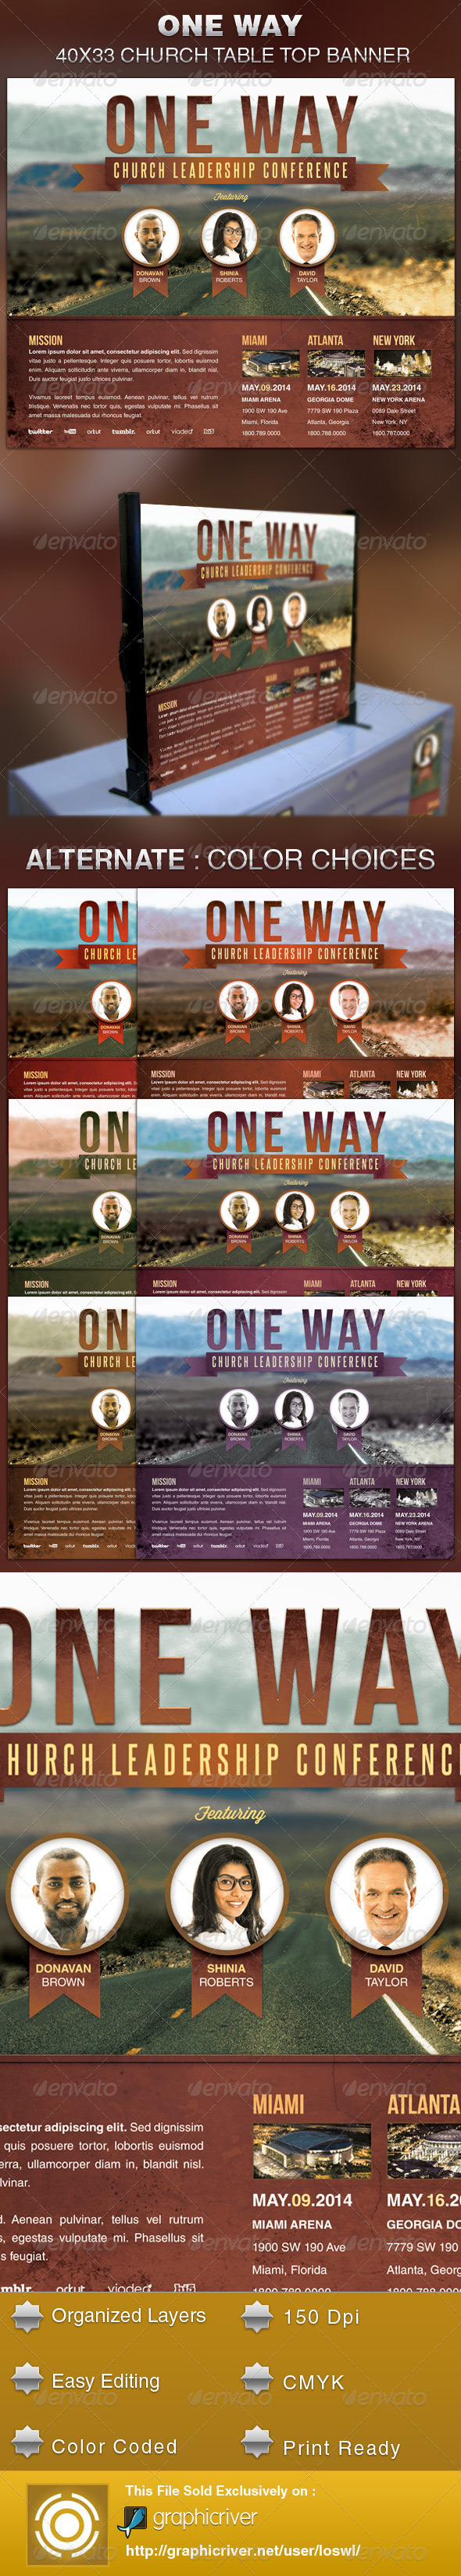 GraphicRiver One Way Church Table Top Banner Template 5758315